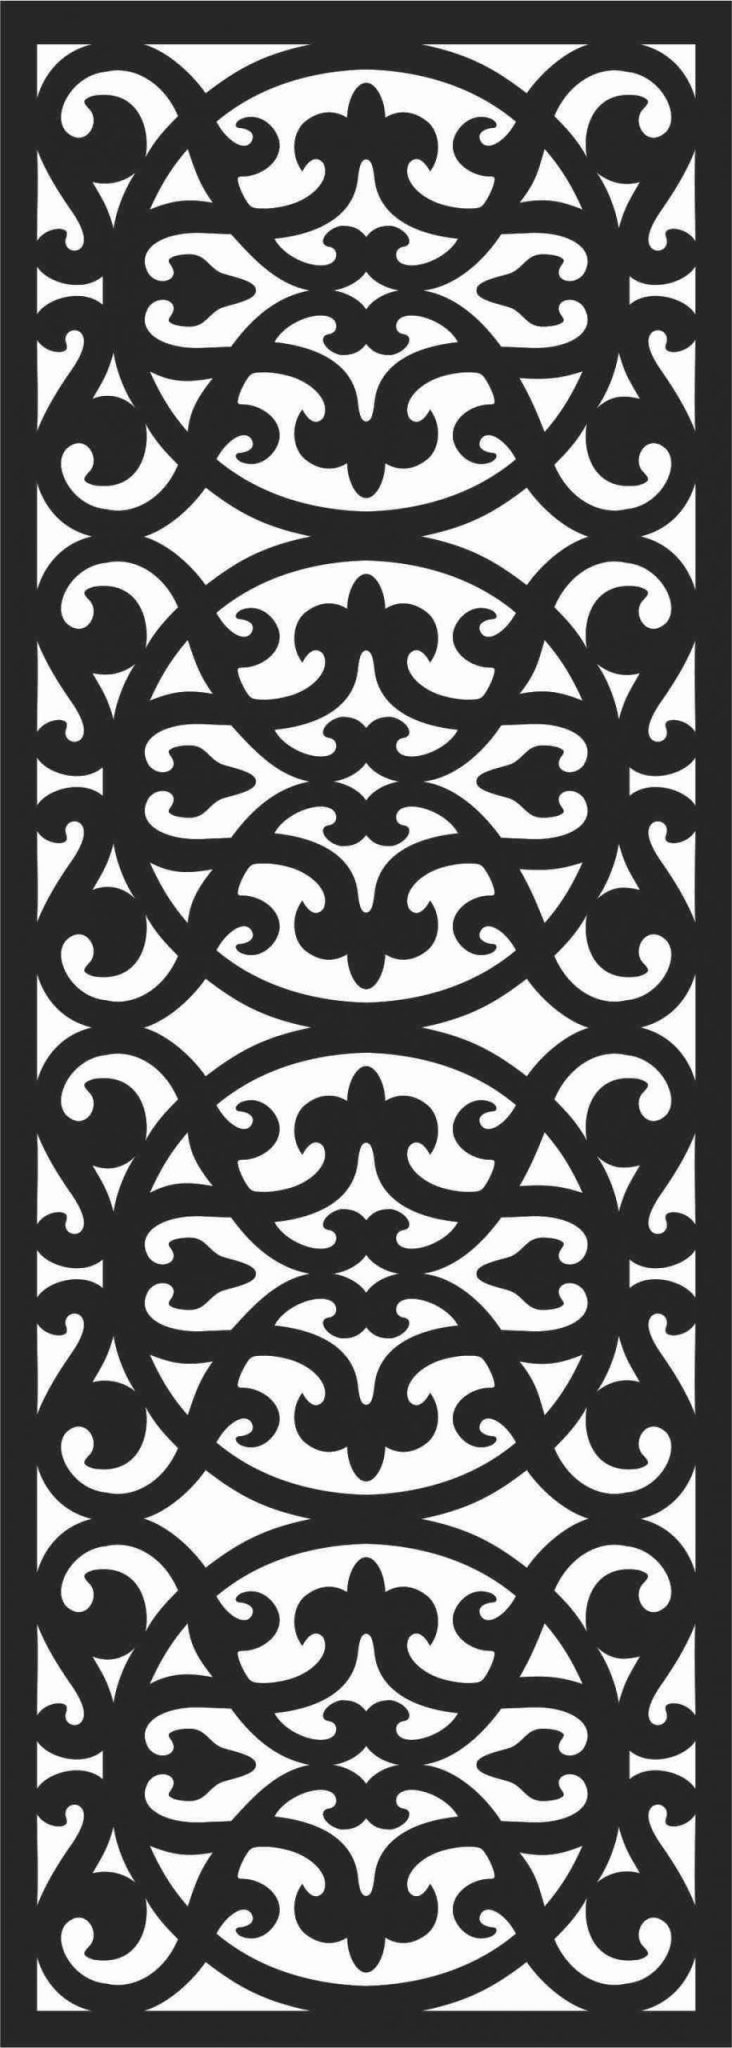 Floral Screen Patterns Design 43 Free DXF File